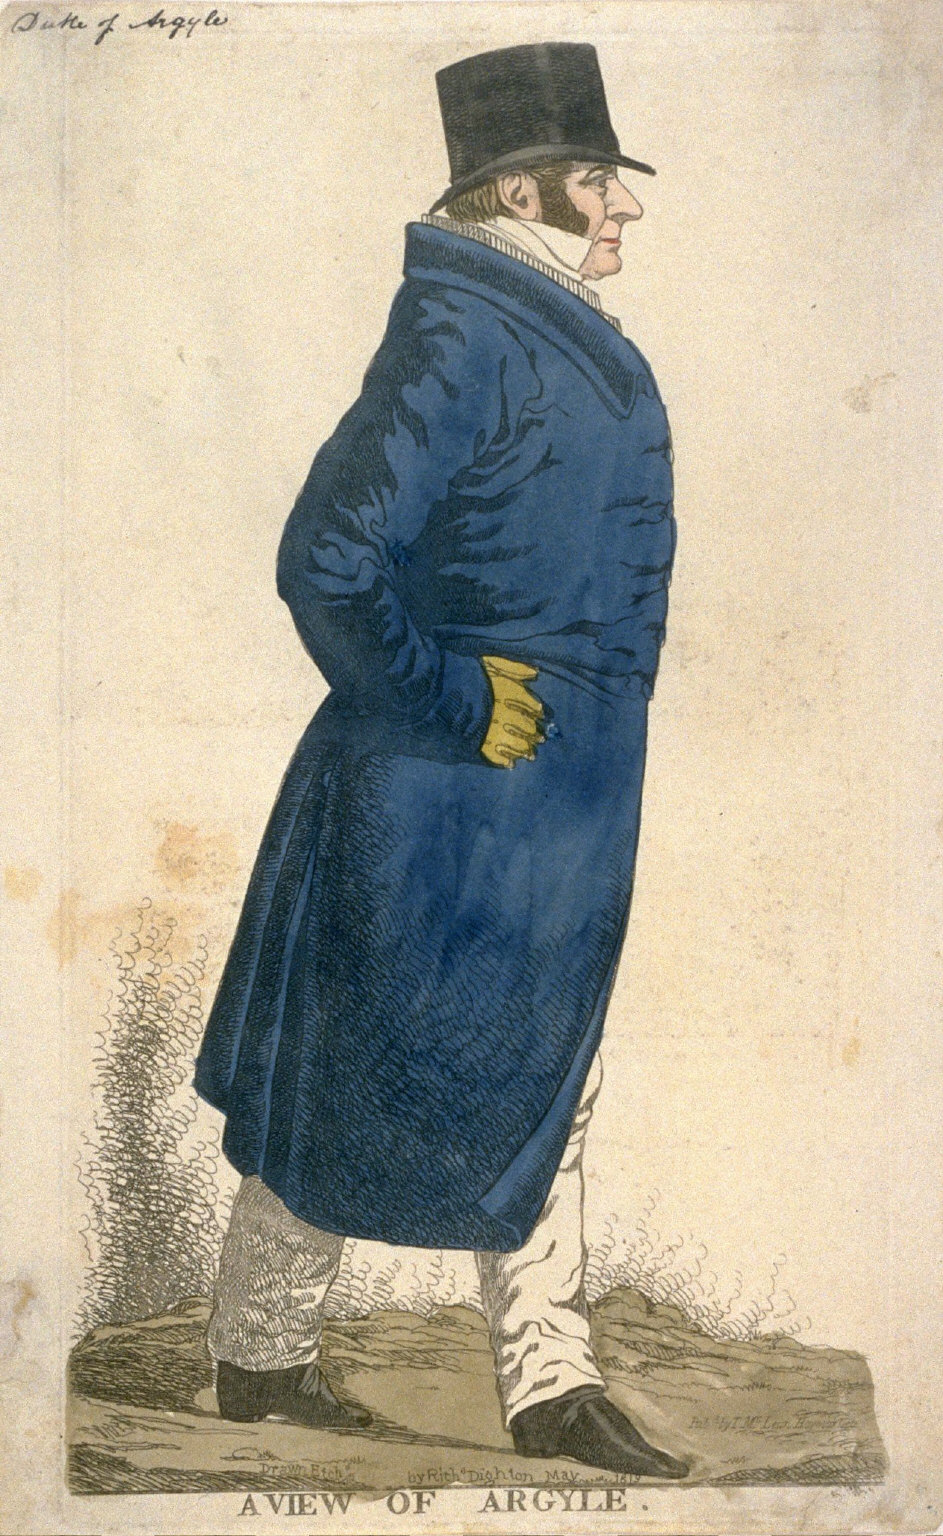 """Caricature (full figure) of Duke of Argyll - """" A View of Argyle"""""""